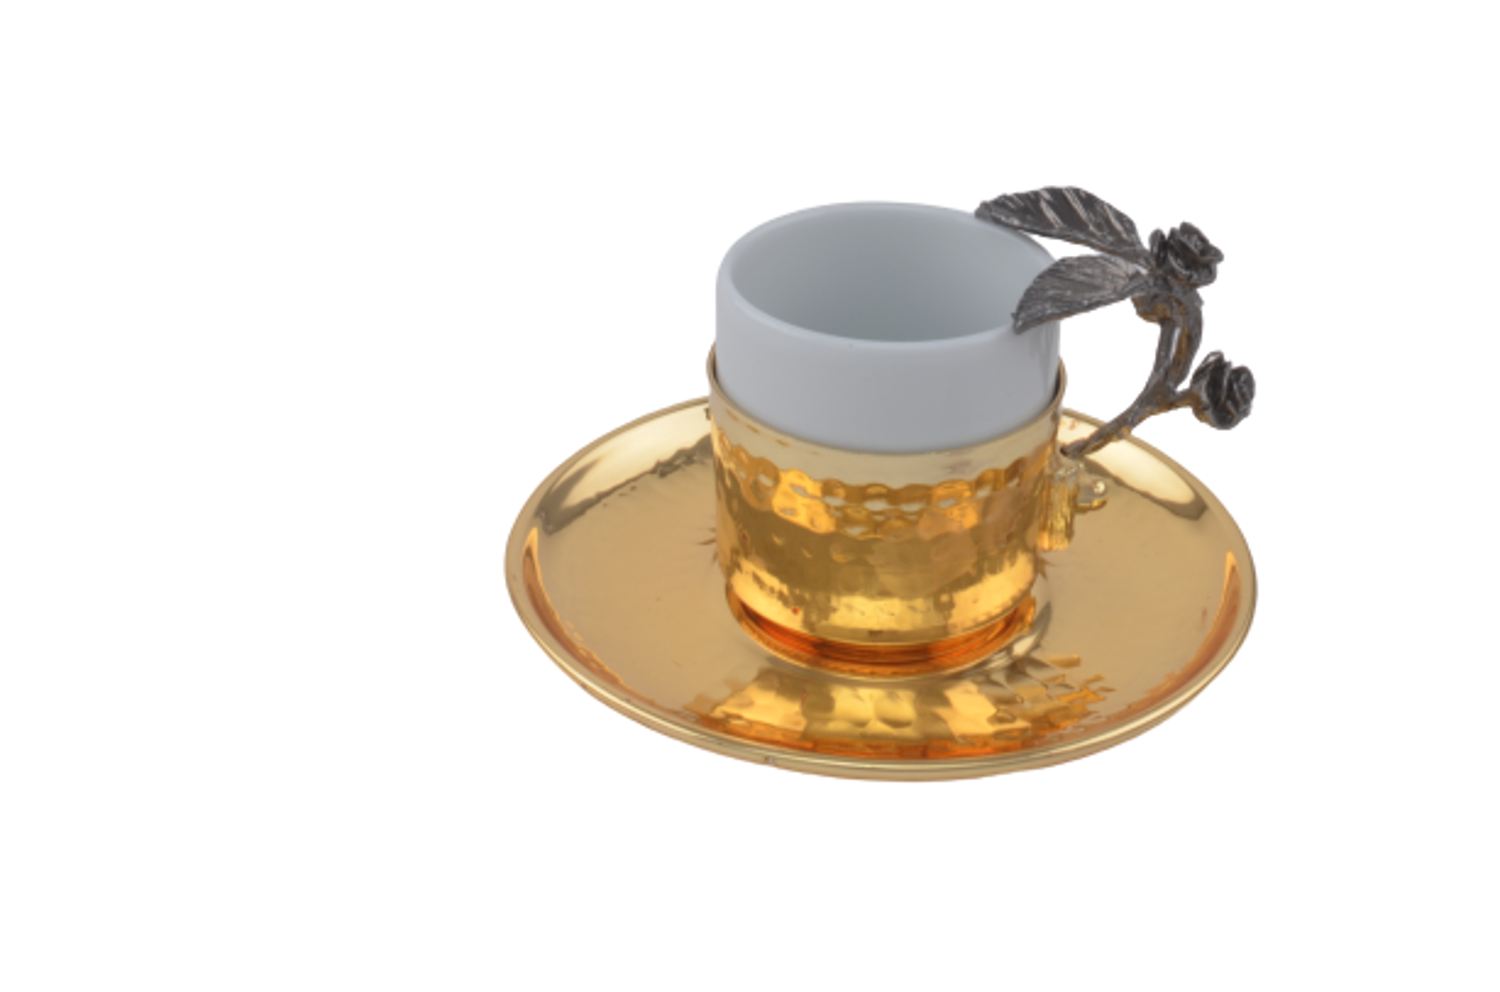 MEVLANA TURKISH COFFEE CUP GOLD BLACK J.G. resmi